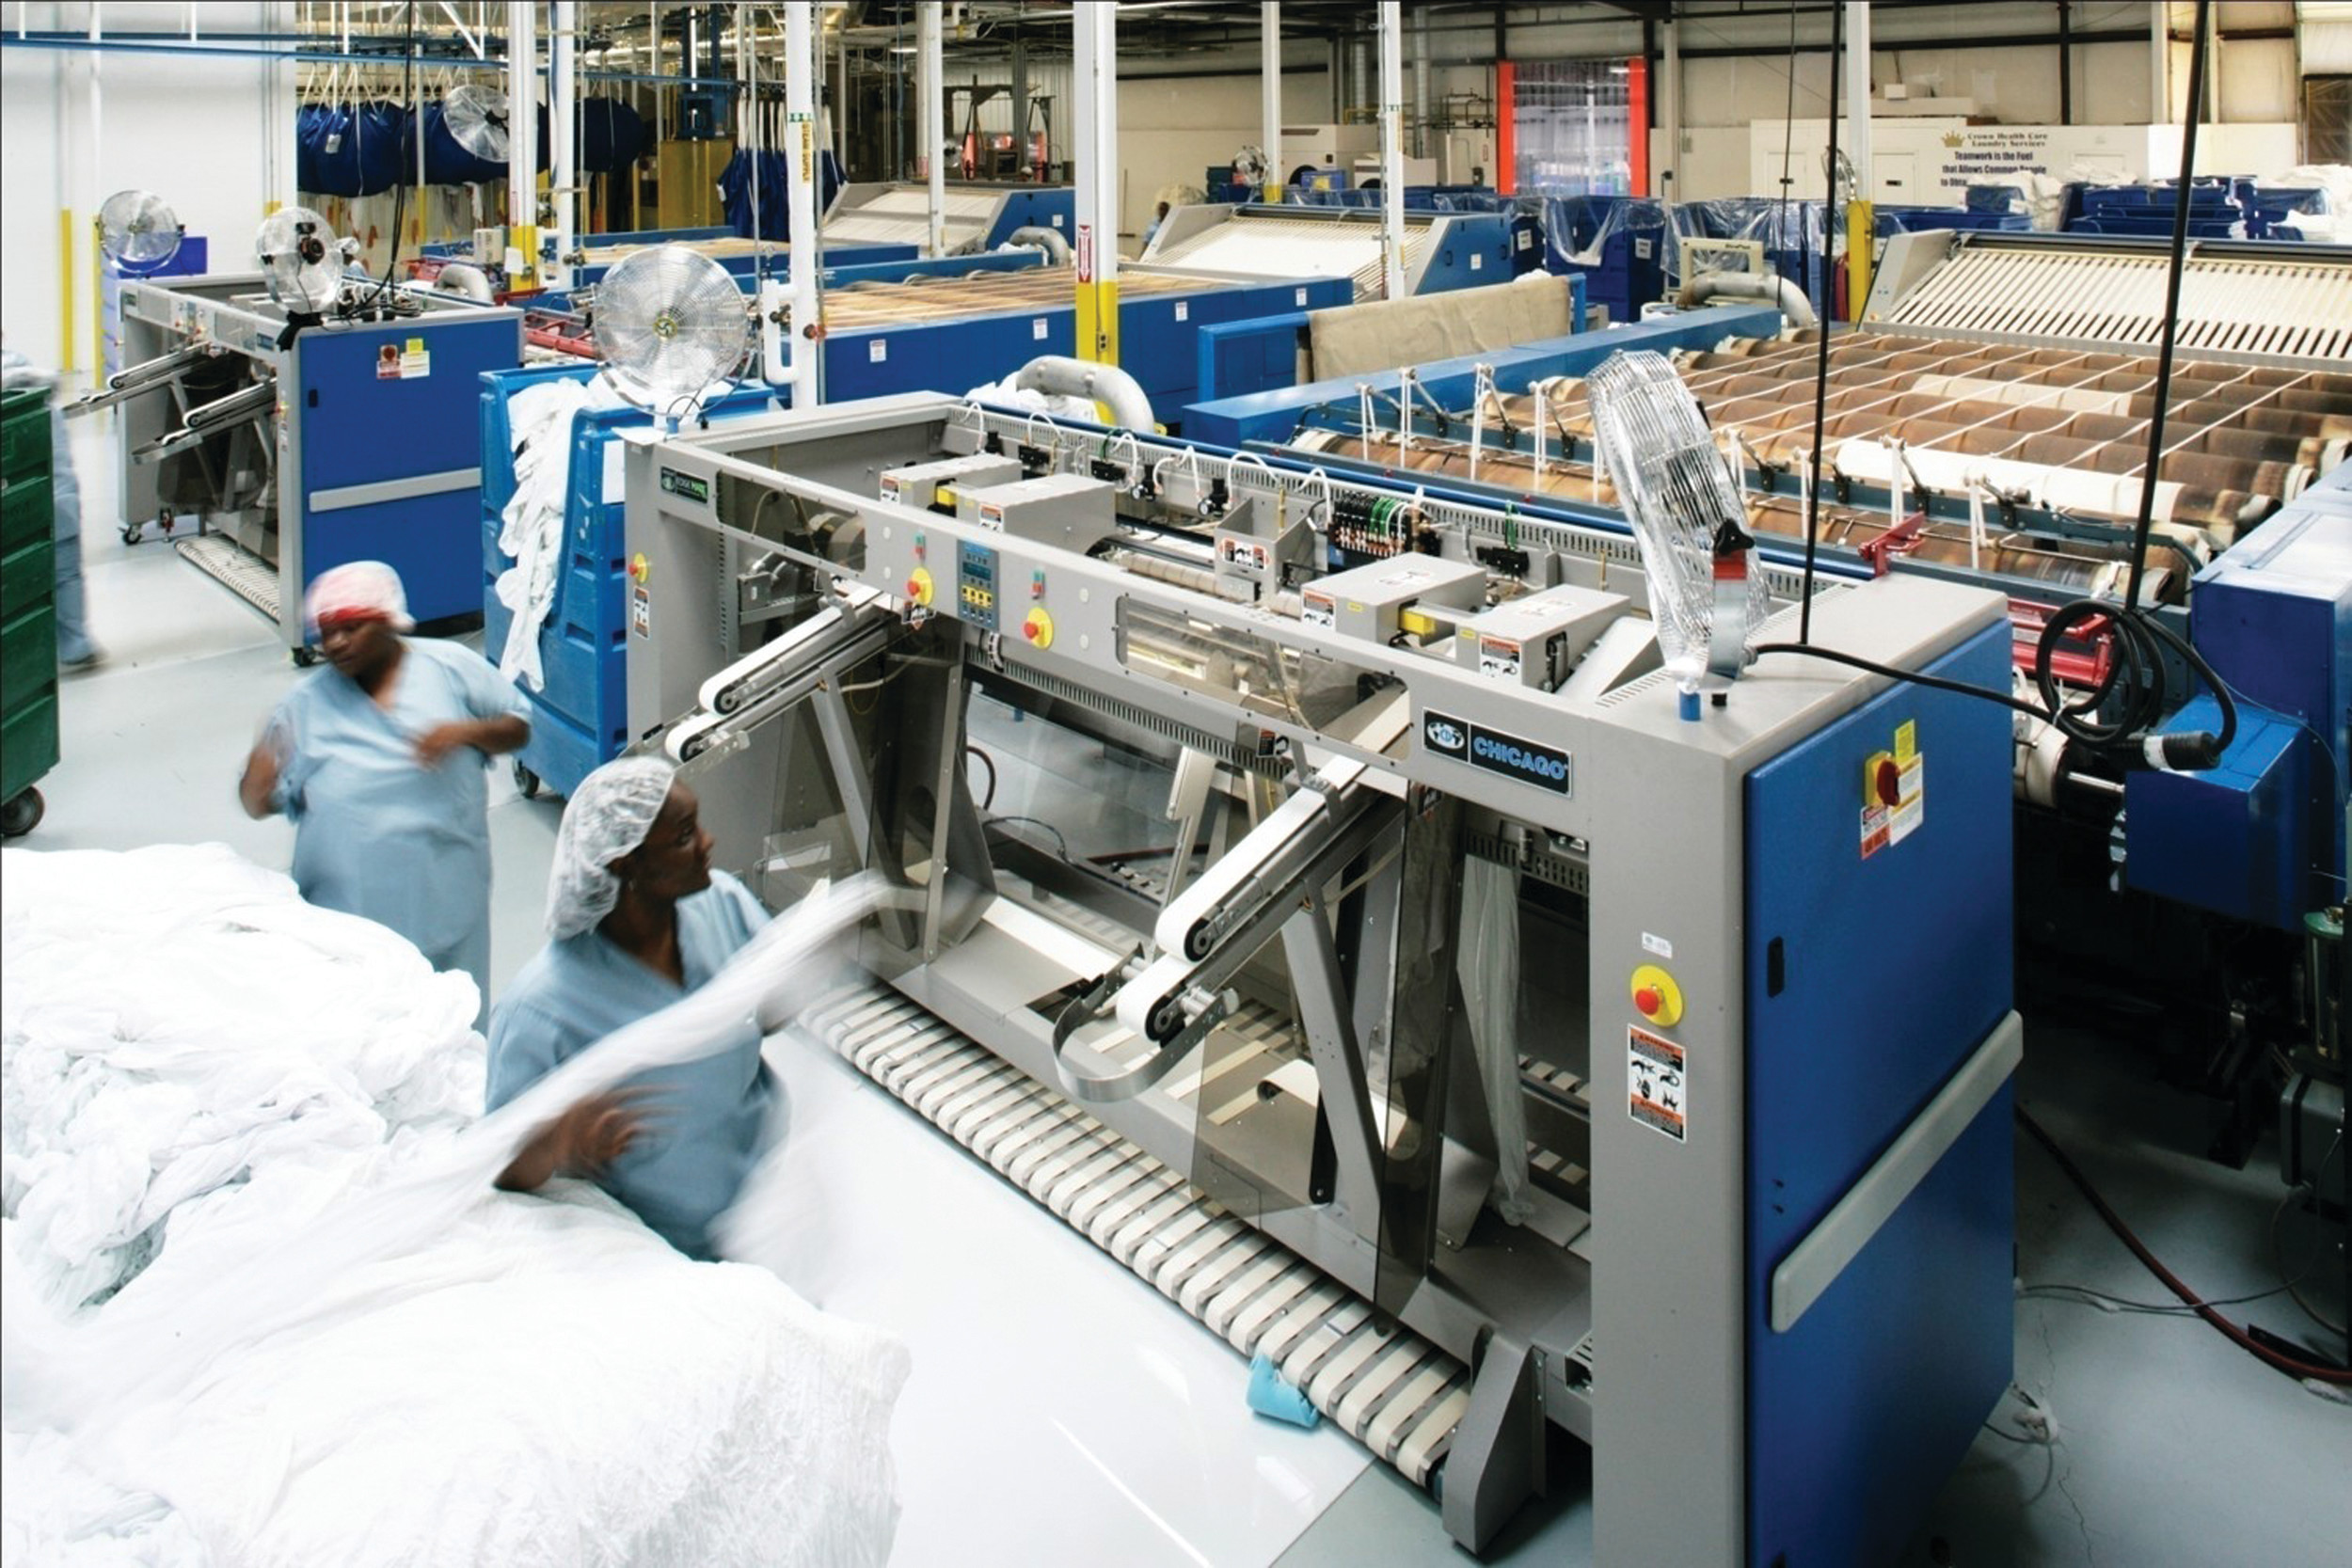 Production operators sort linens recently at a Crown Health Care Laundry Services processing facility in Quitman, Georgia. The company's Bishopville plant is set to open Nov. 1, according to a company official.